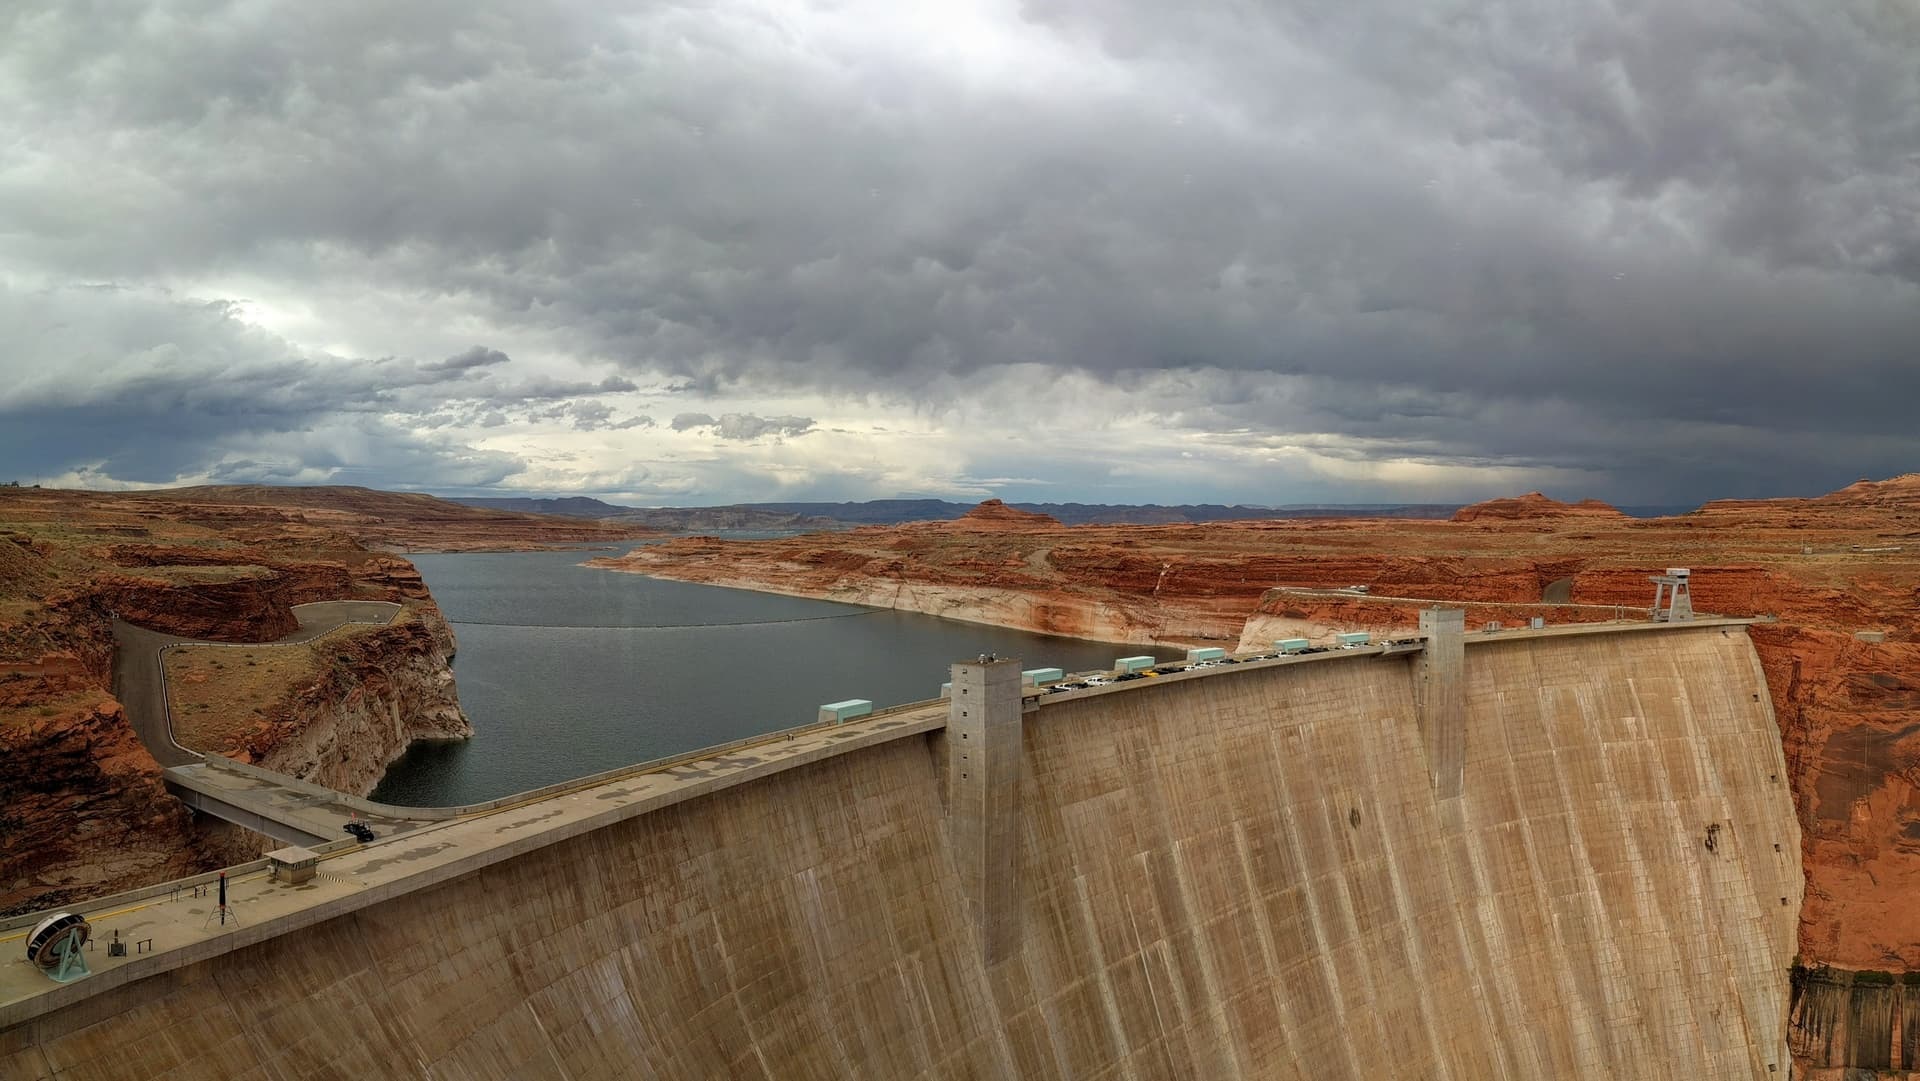 The Glen Canyon Dam, with Lake Powell extending behind it to the horizon. The rocks on either side of the lake are bright red-orange, but turn white just above the water.